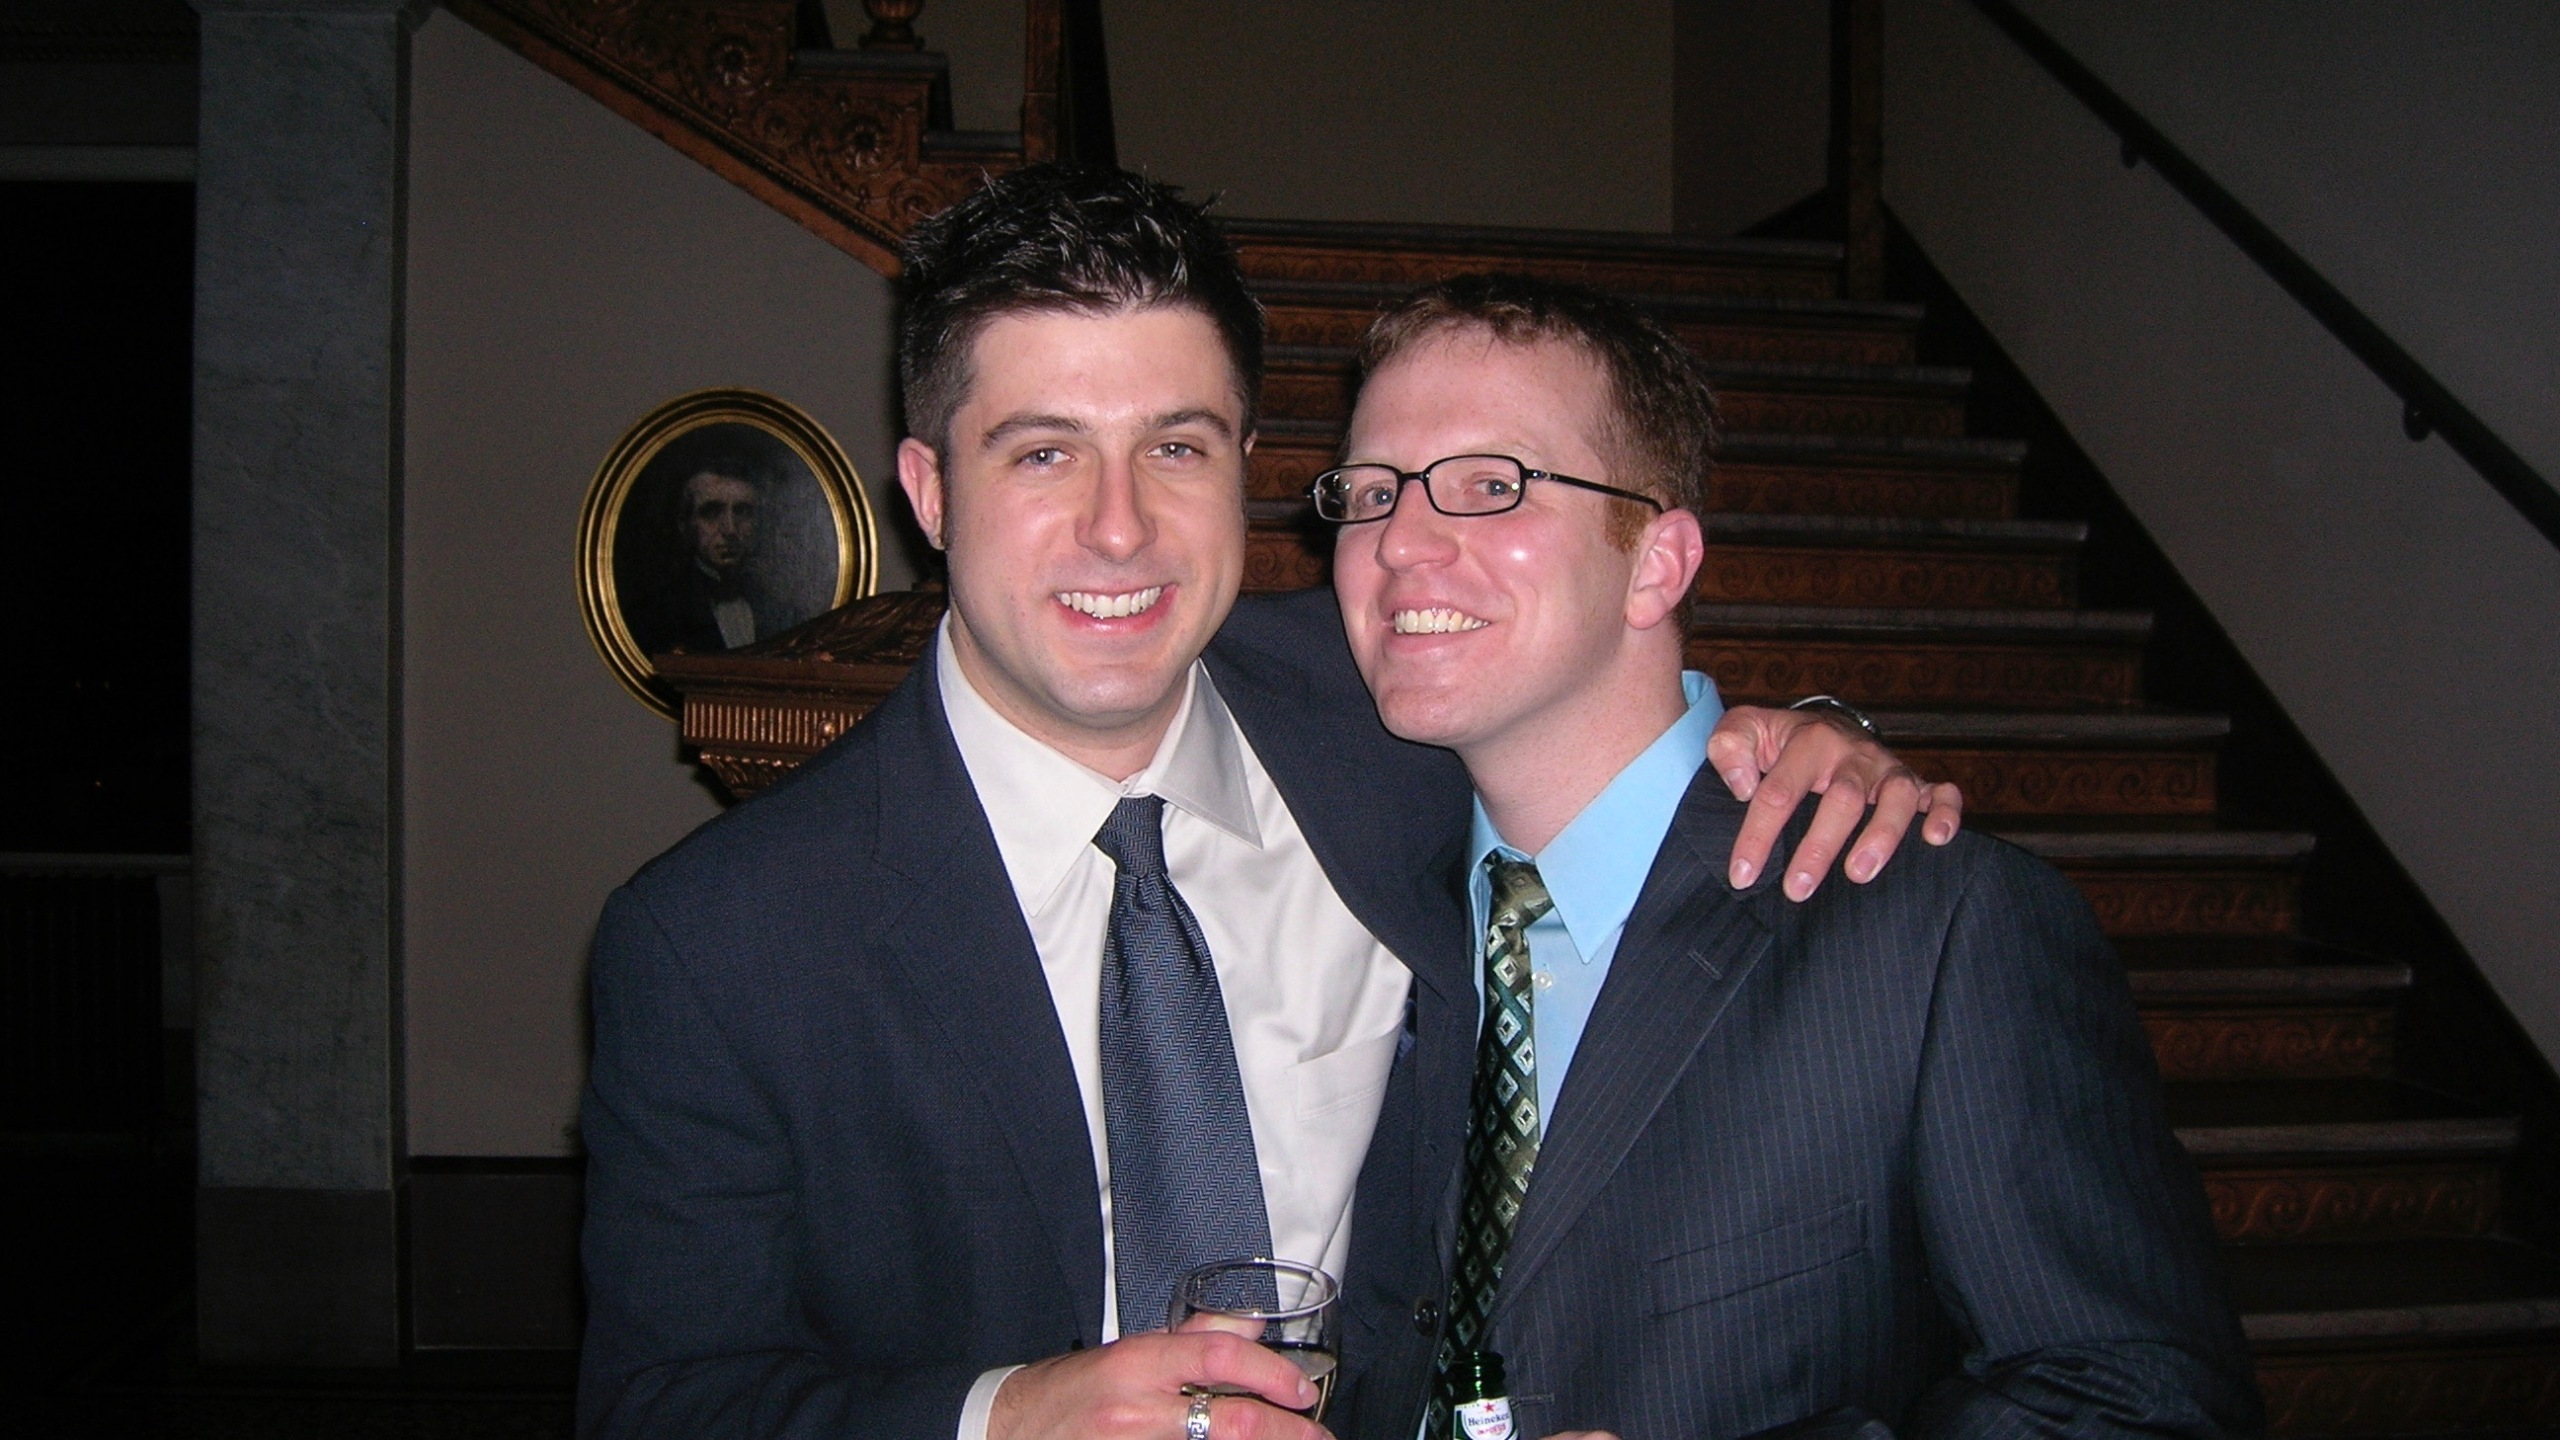 OTL host Mike Stephen and producer Andy Hermann celebrate five years of friendship in 2006.